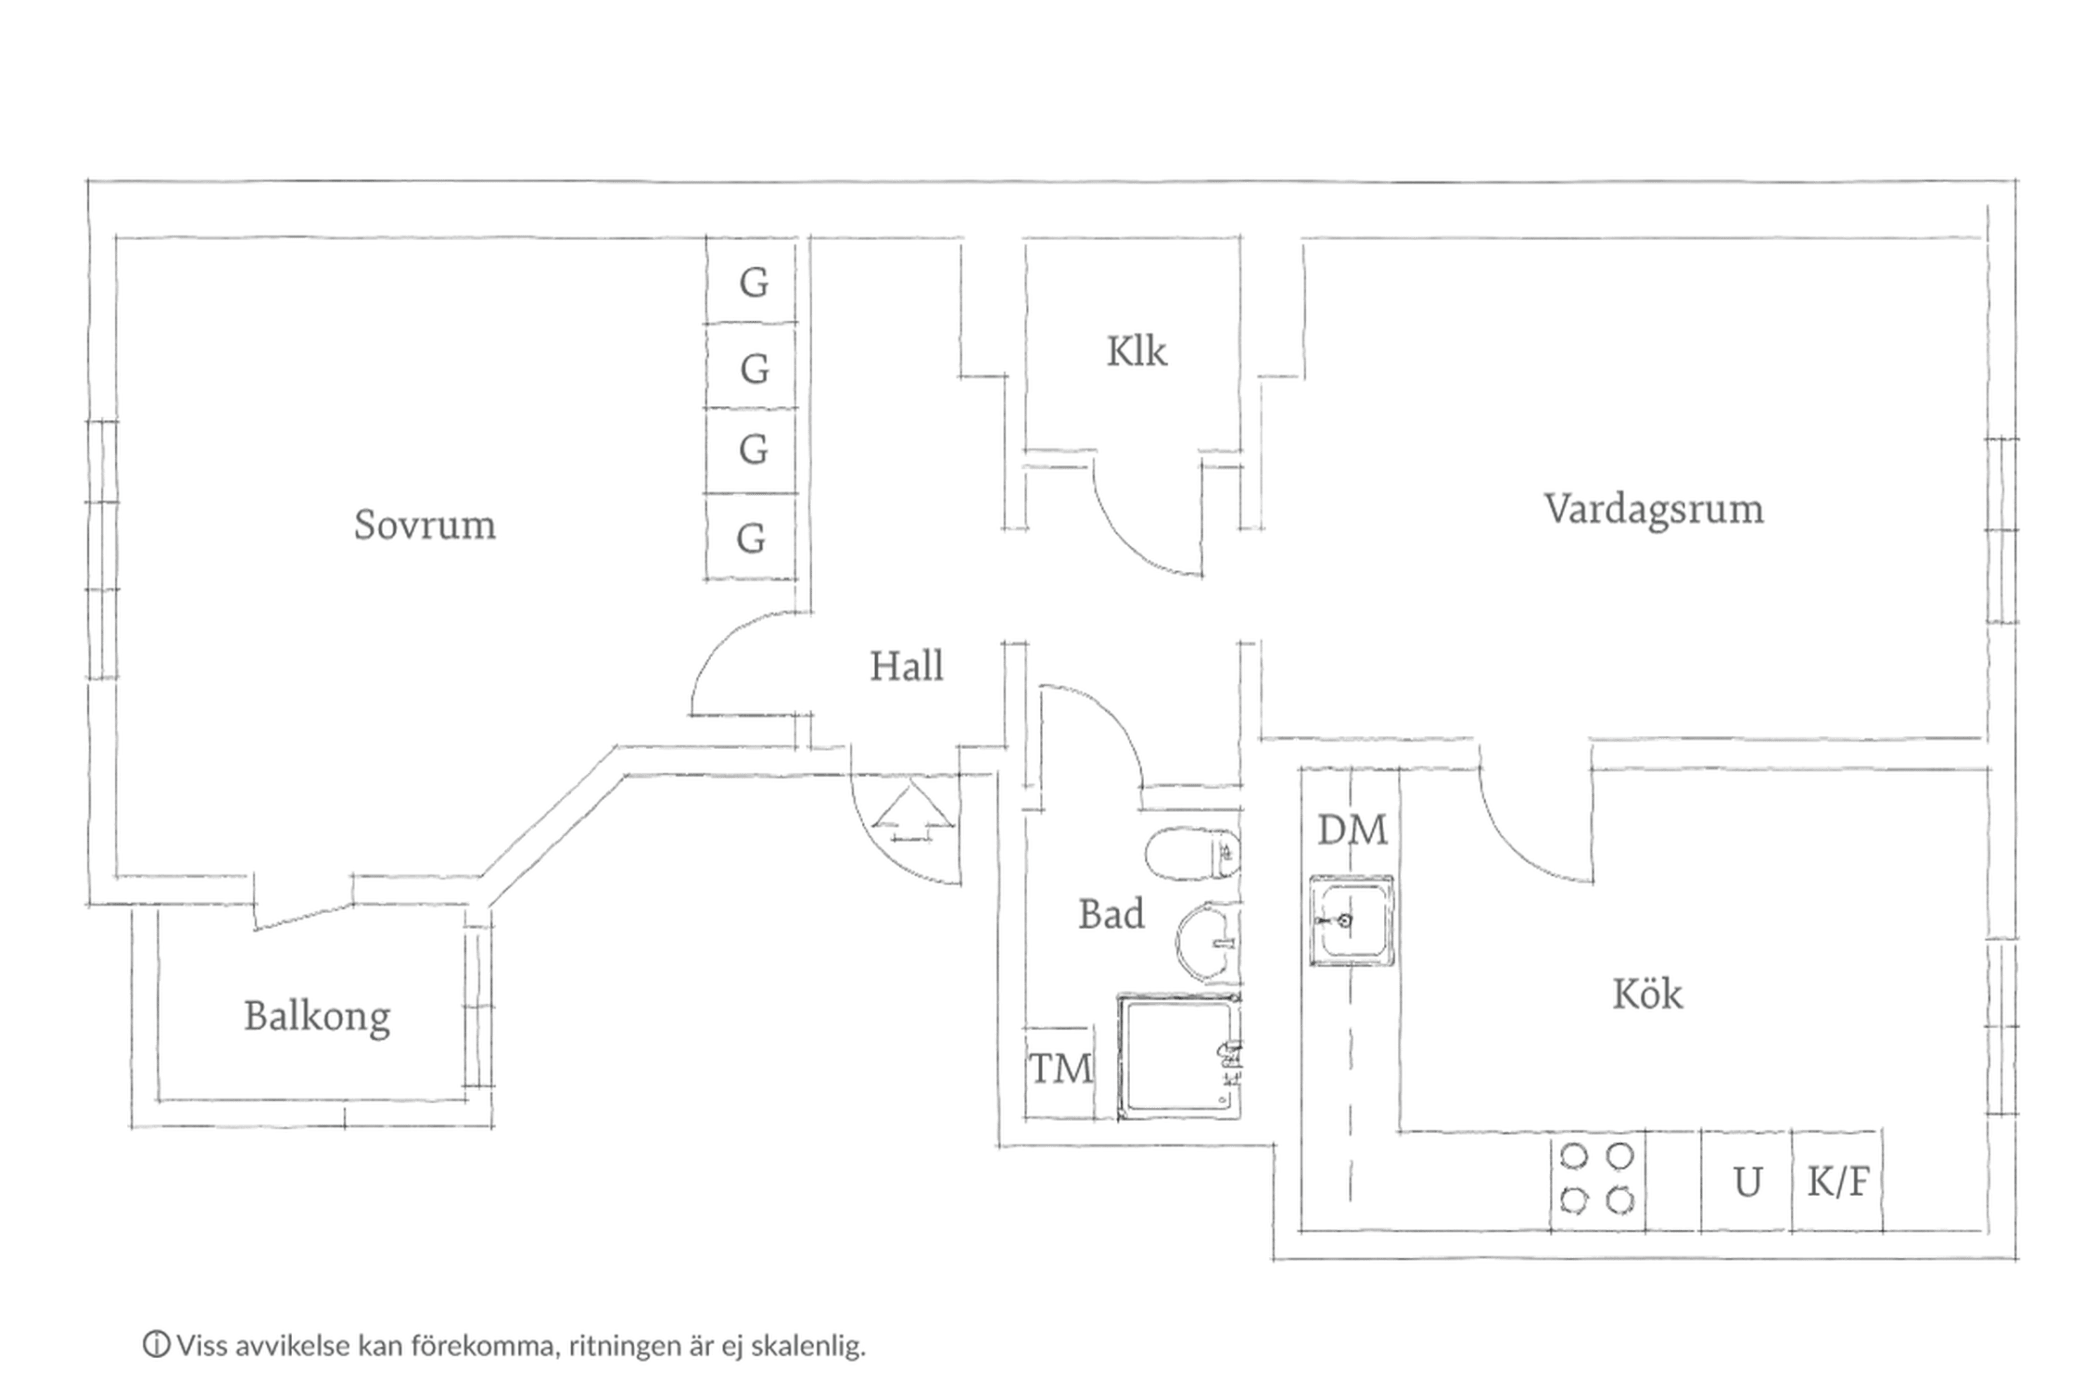 32542 66 sqm apartment floor plan